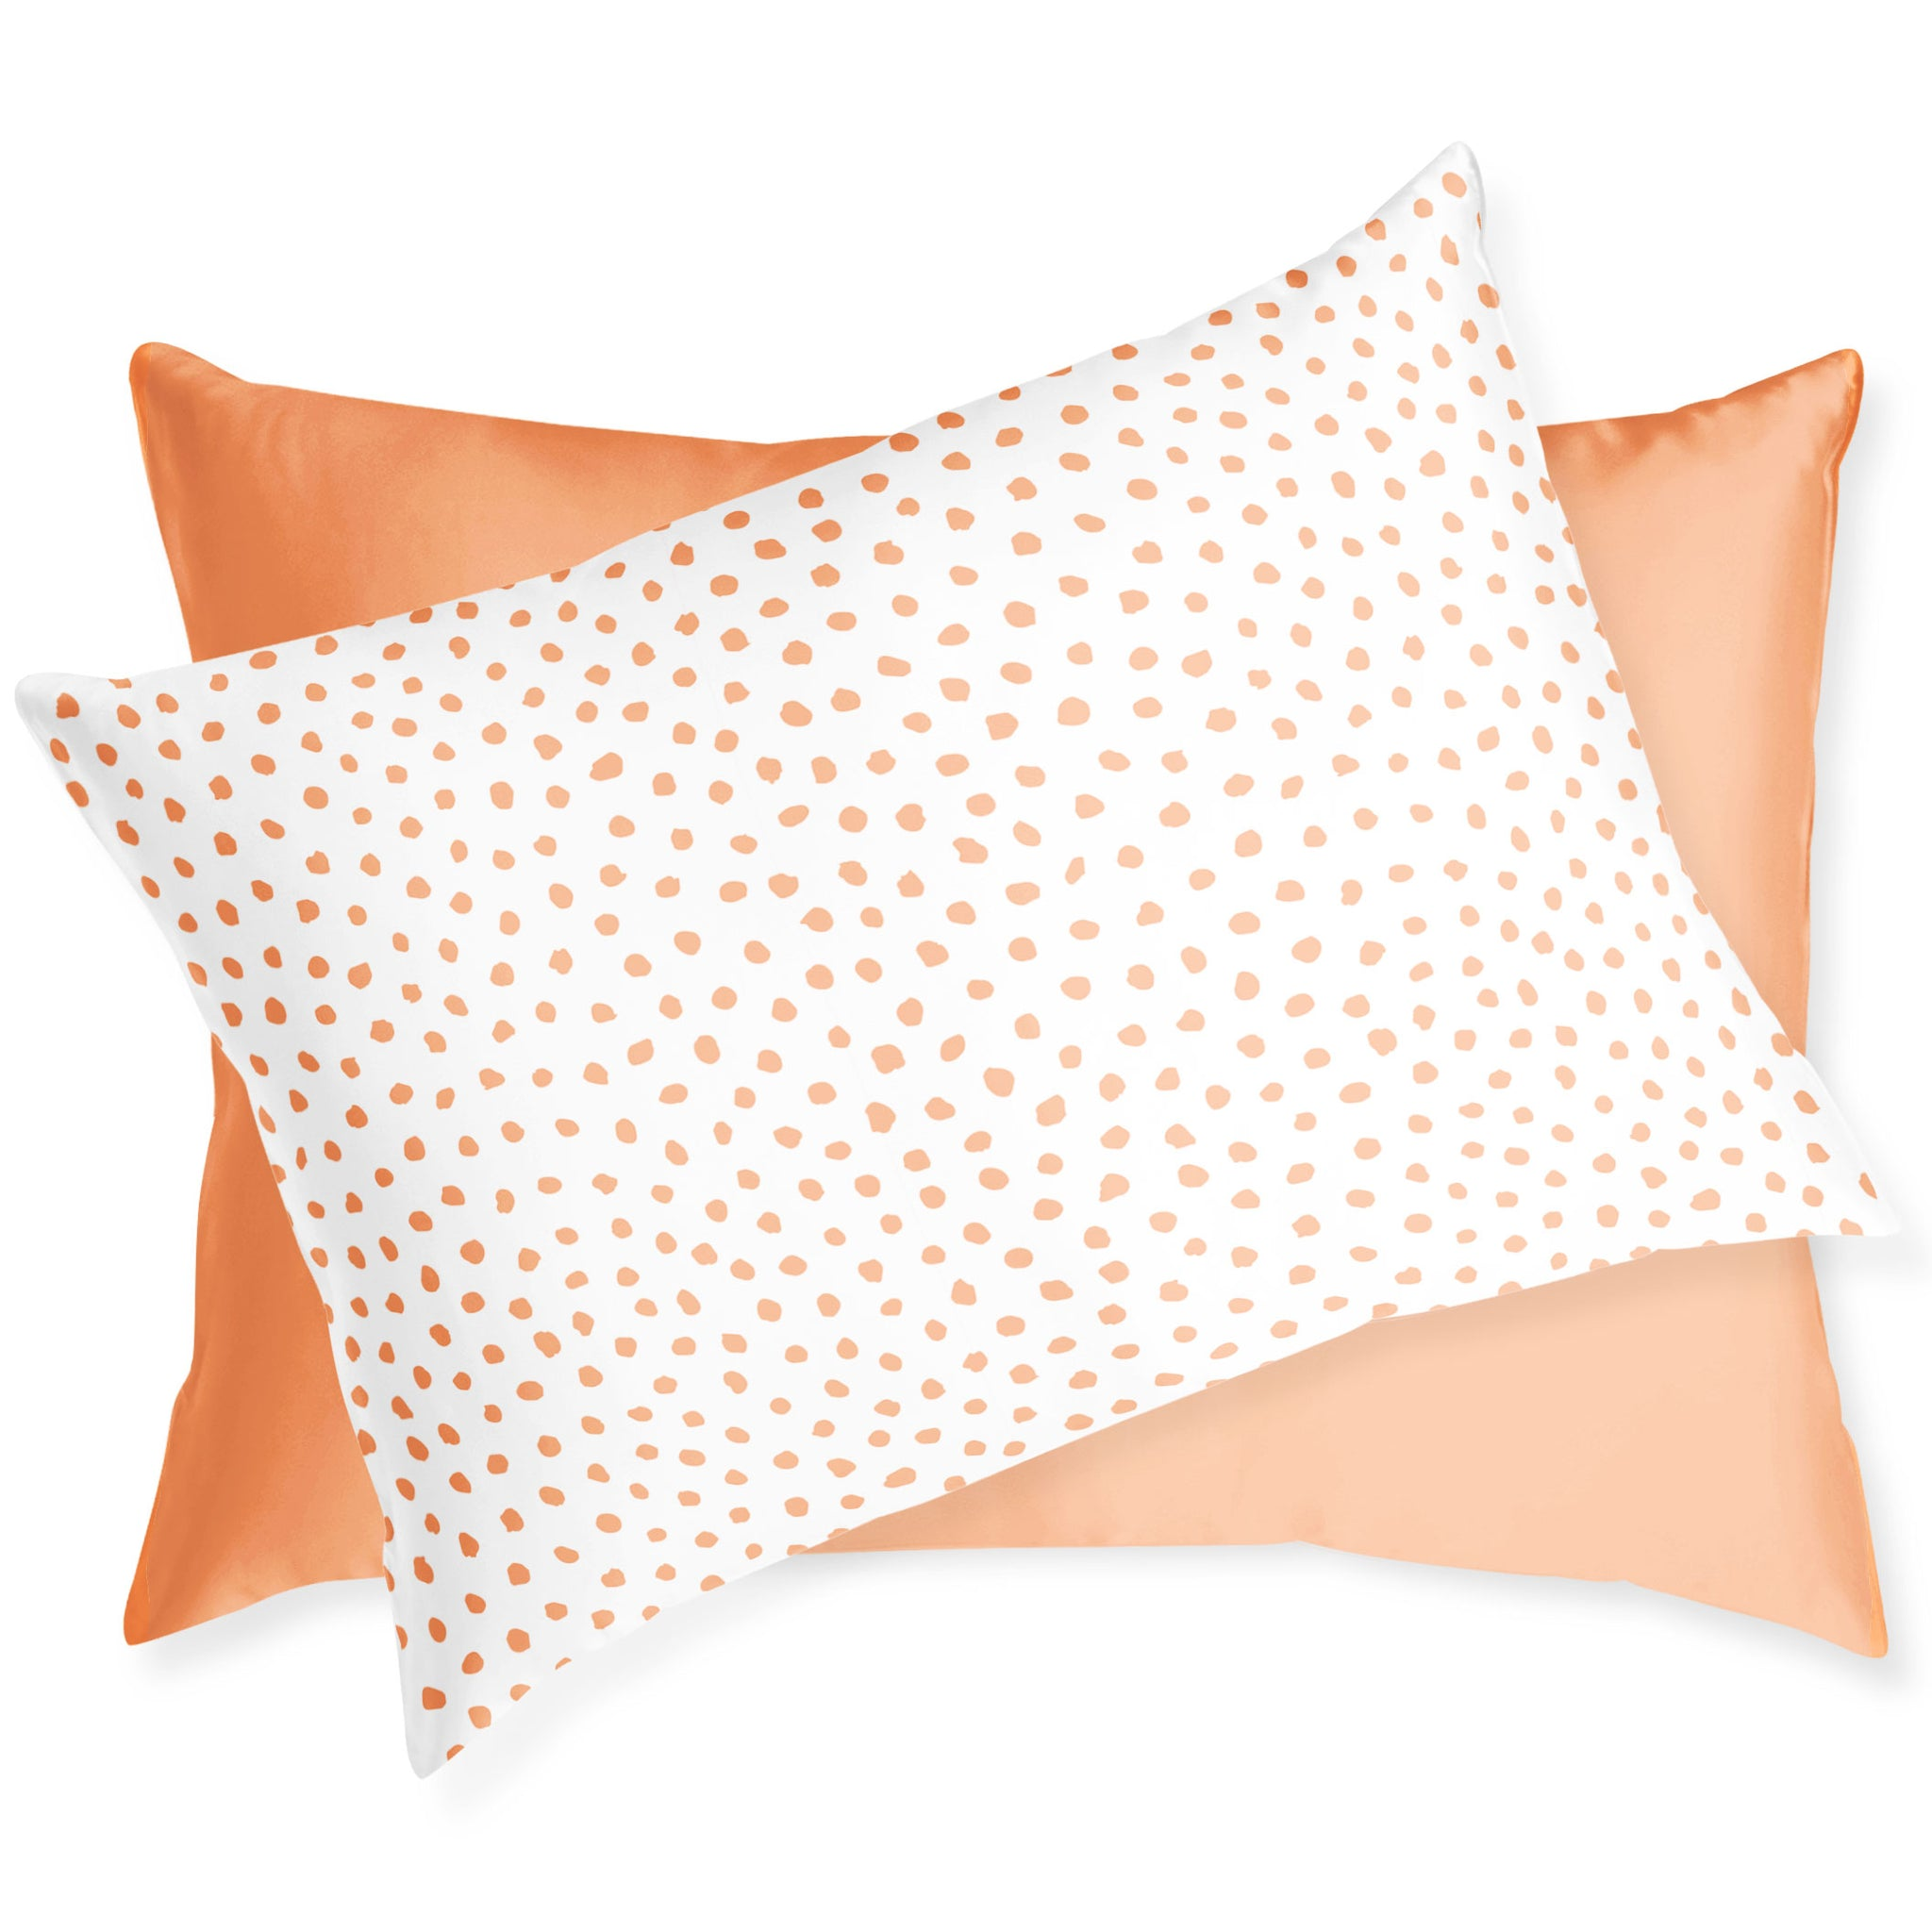 Peach Spot On Silk Reversible Pillowcase | Frankie Peach Australia Luxury Silk Australia